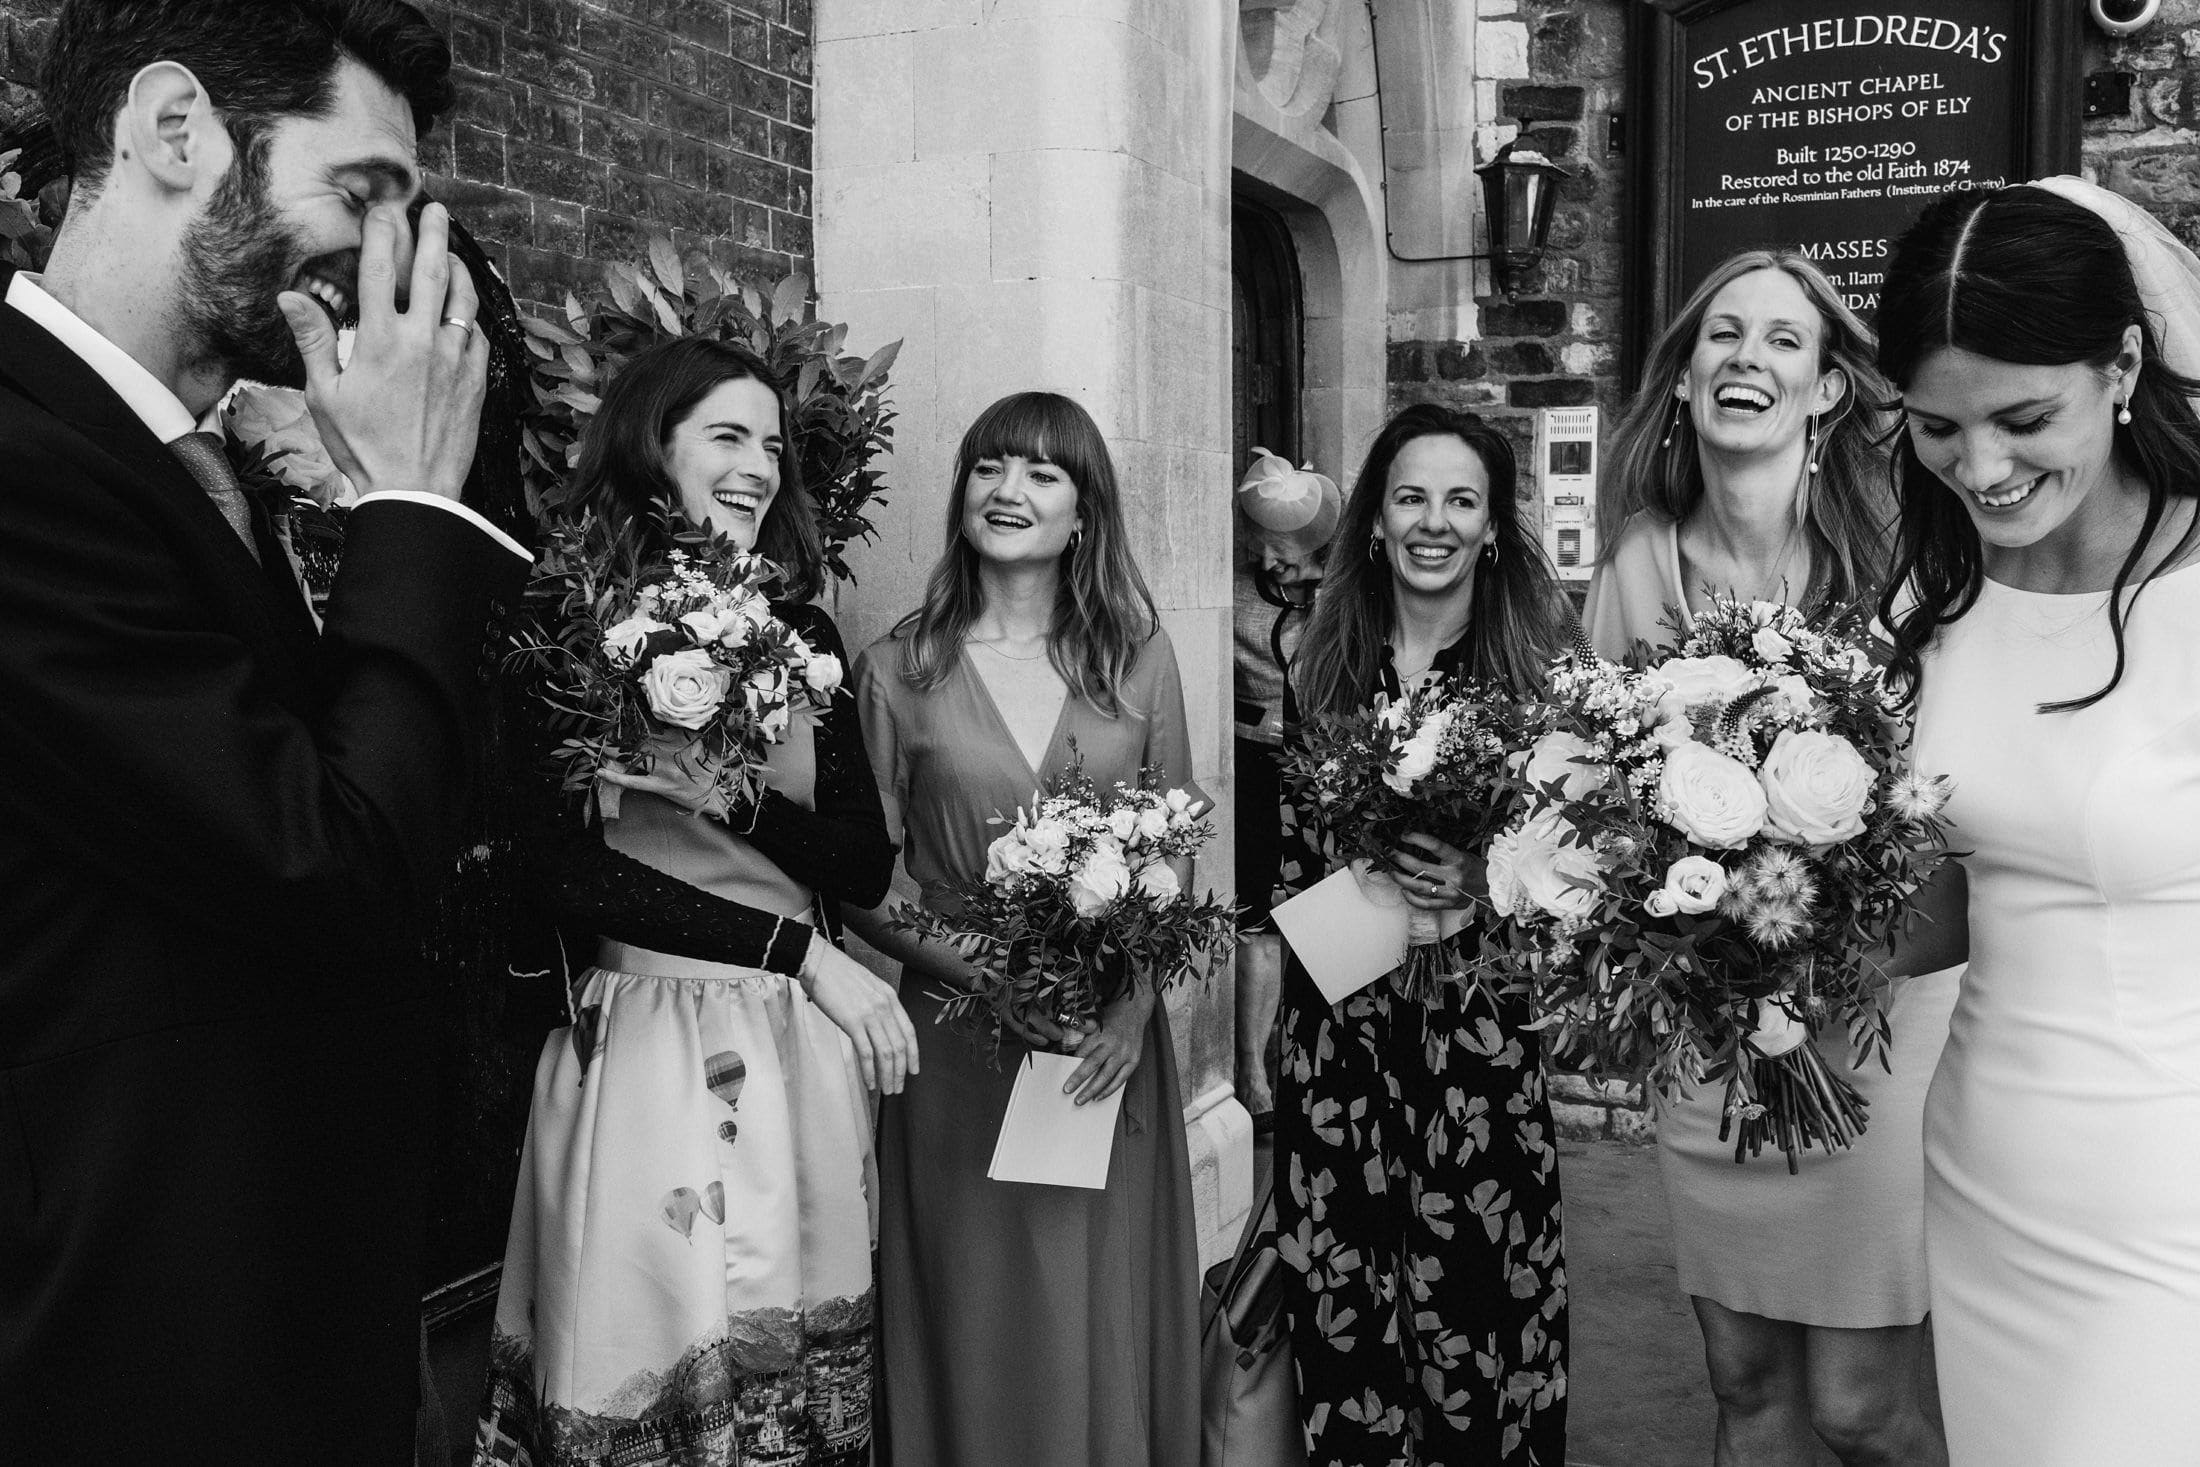 Black & white documentary wedding photograph outside St Etheldreda's church in Londona laughing bride and groom stand either side of the frame, between them four female guests enjoy the joke, another guest framed between them